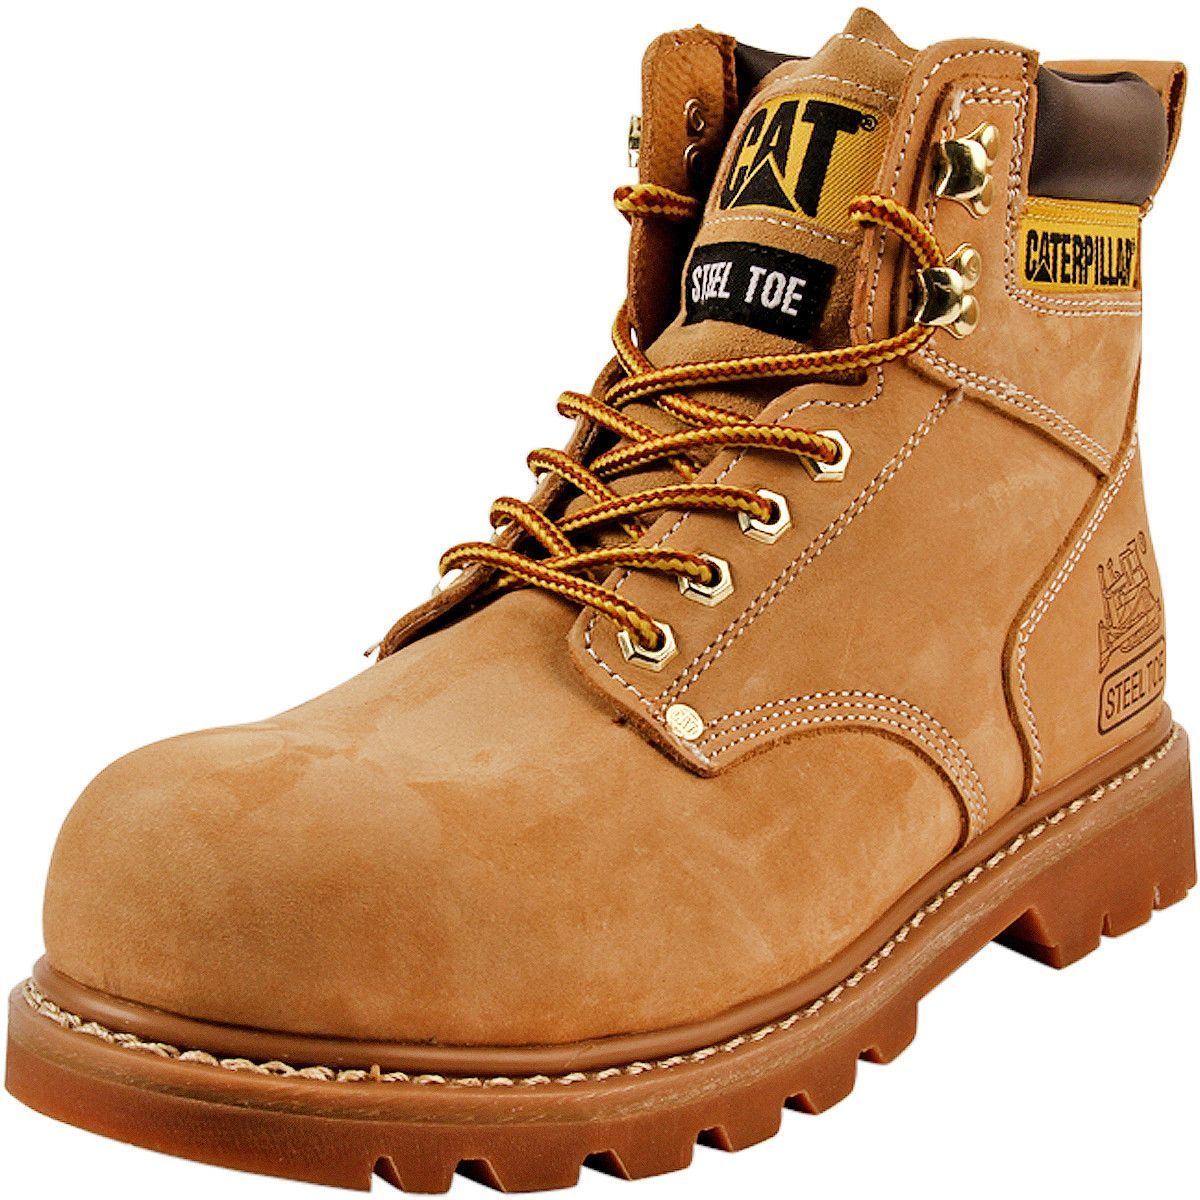 c50bcd39eac Caterpillar - Men's Second Shift Steel Toe Work Boots - Honey Nubuck ...